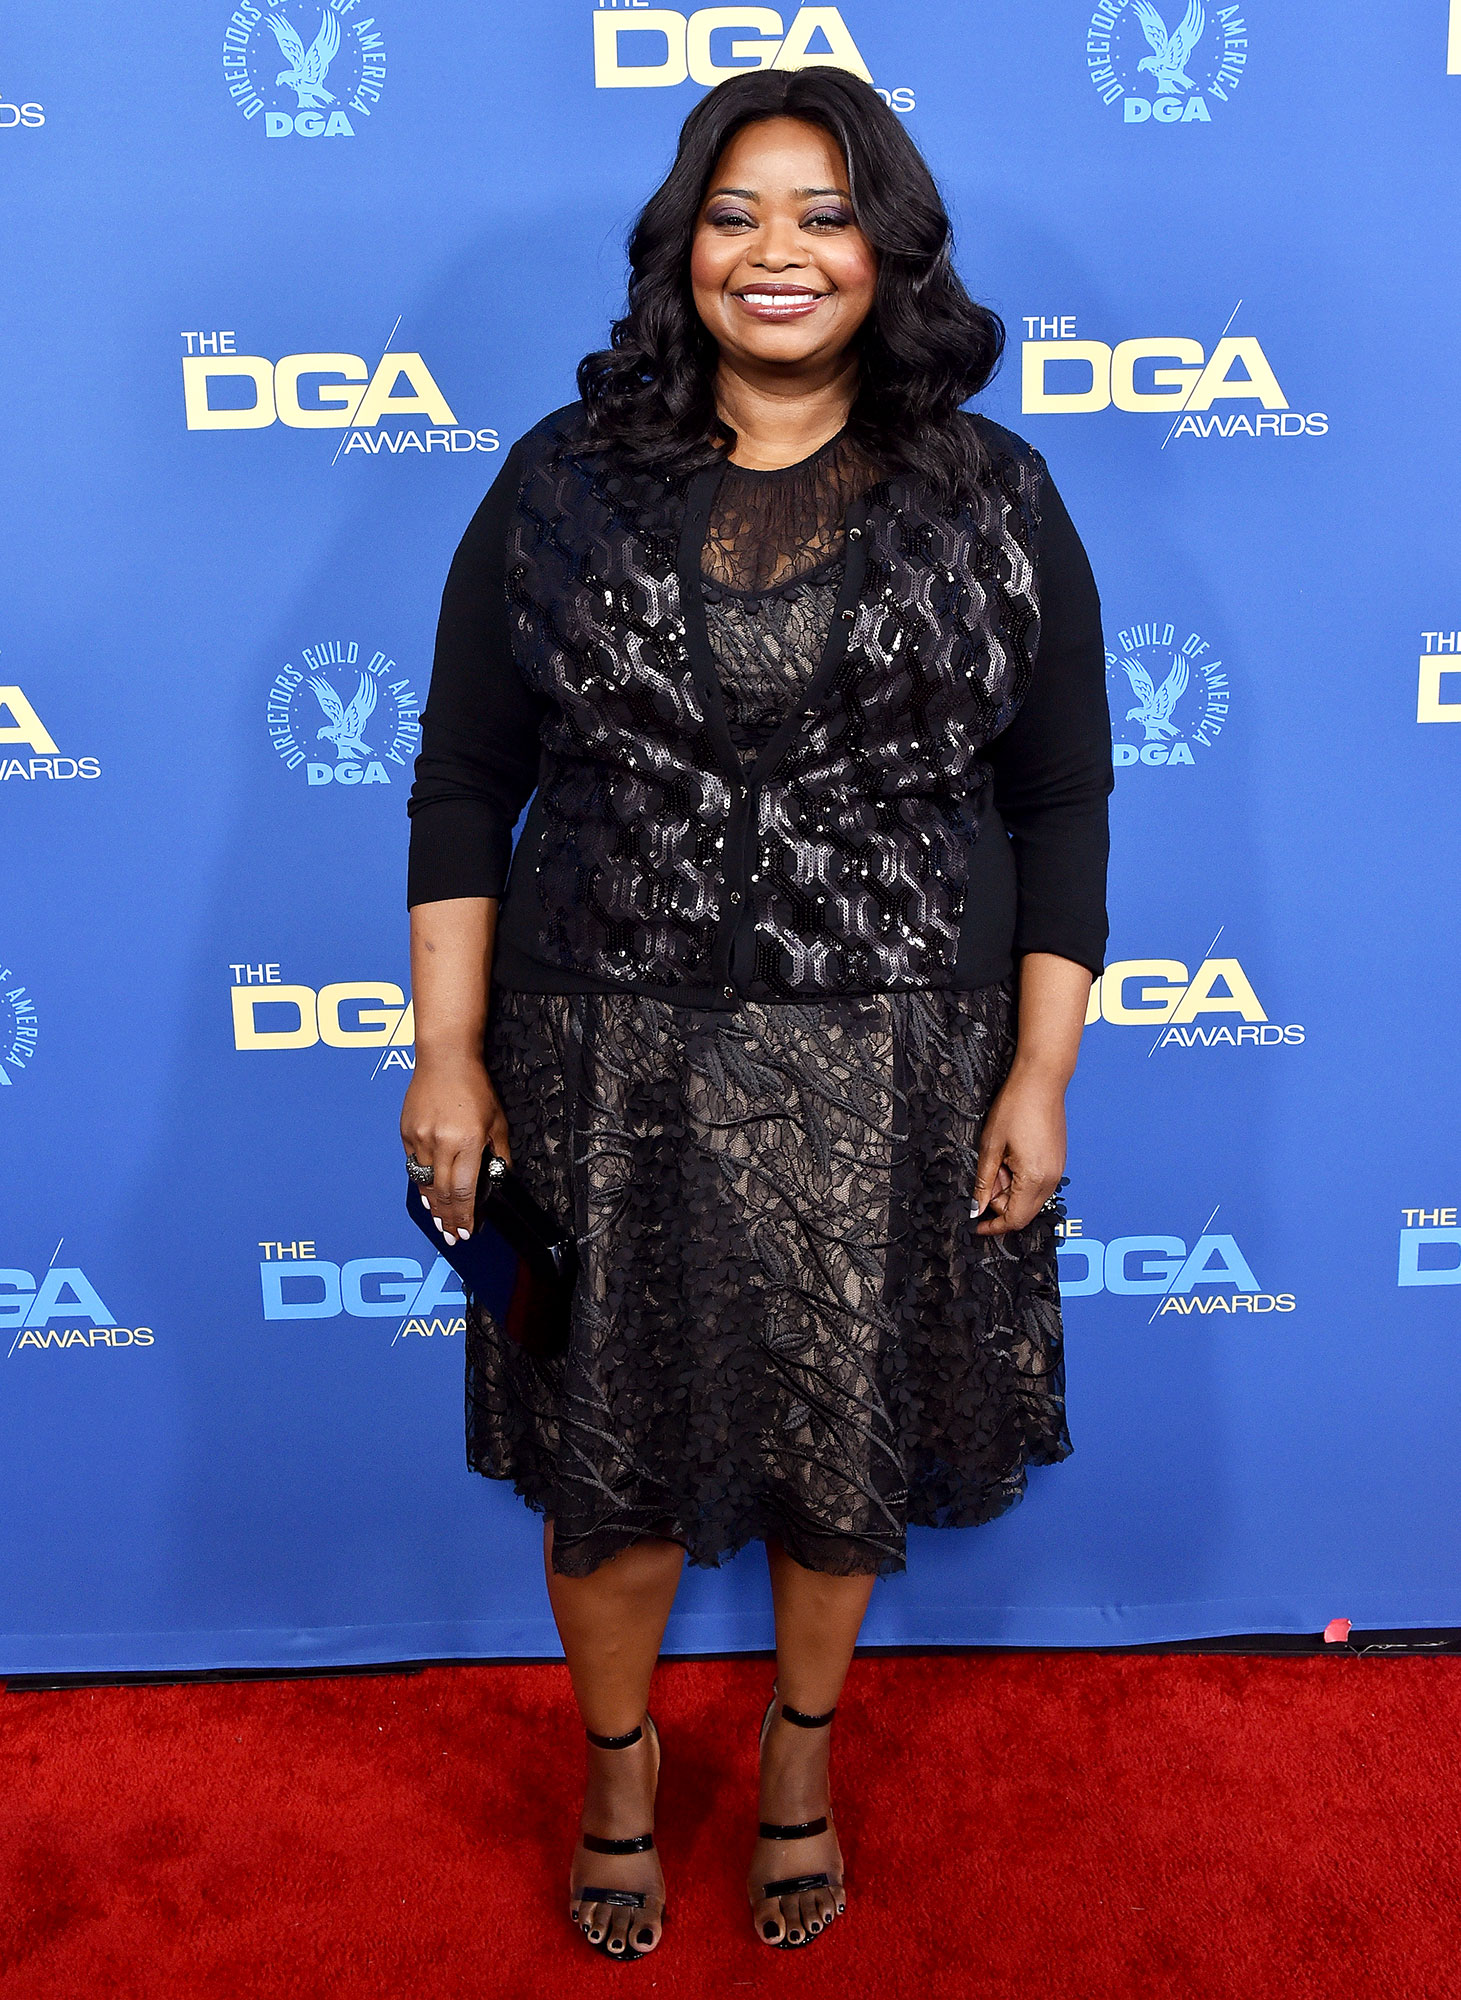 Octavia Spencer attends the 71st Annual Directors Guild of America Awards at The Ray Dolby Ballroom at Hollywood - The Help actress kept it simple in a knee-length black dress which she paired with strappy black heels.